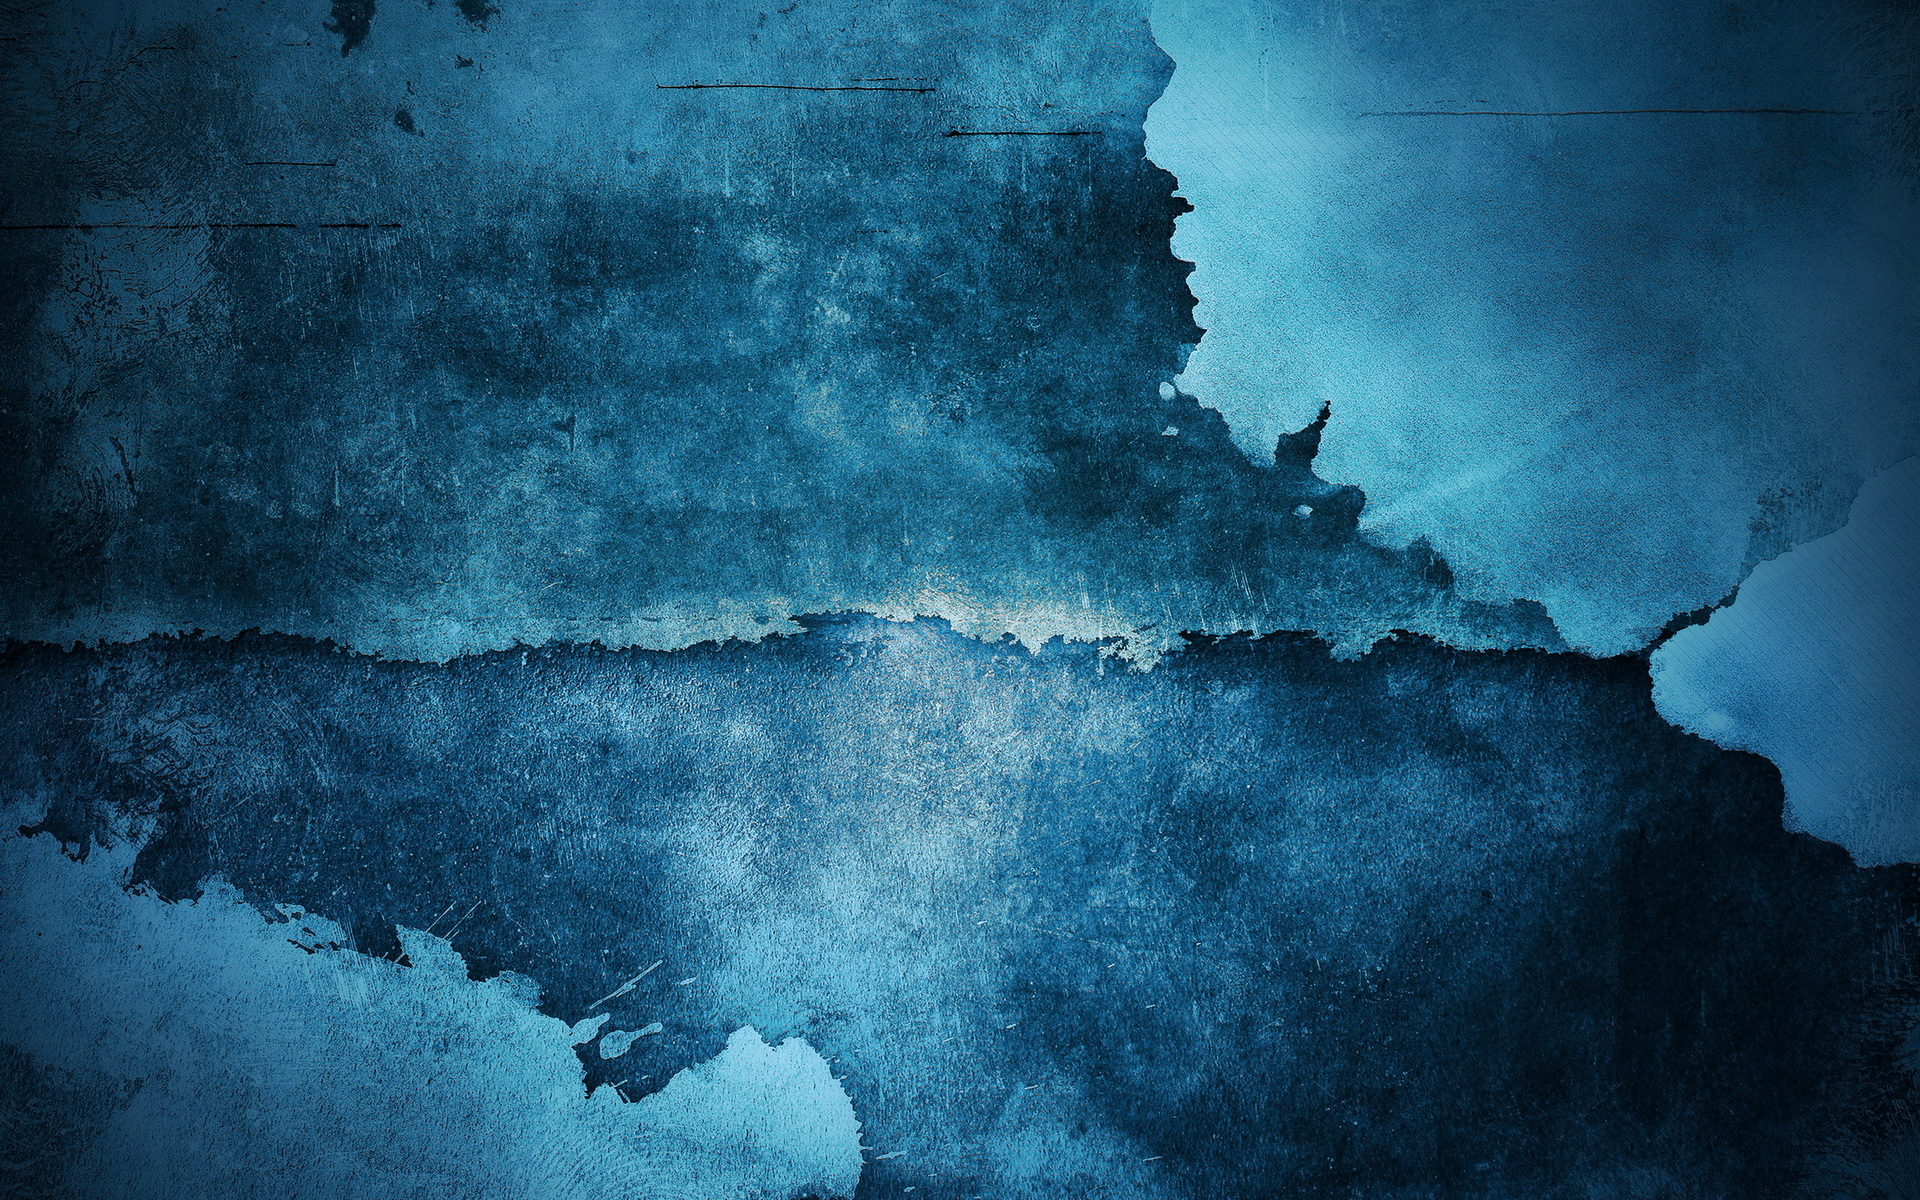 Blue Grunge Background Photoshop